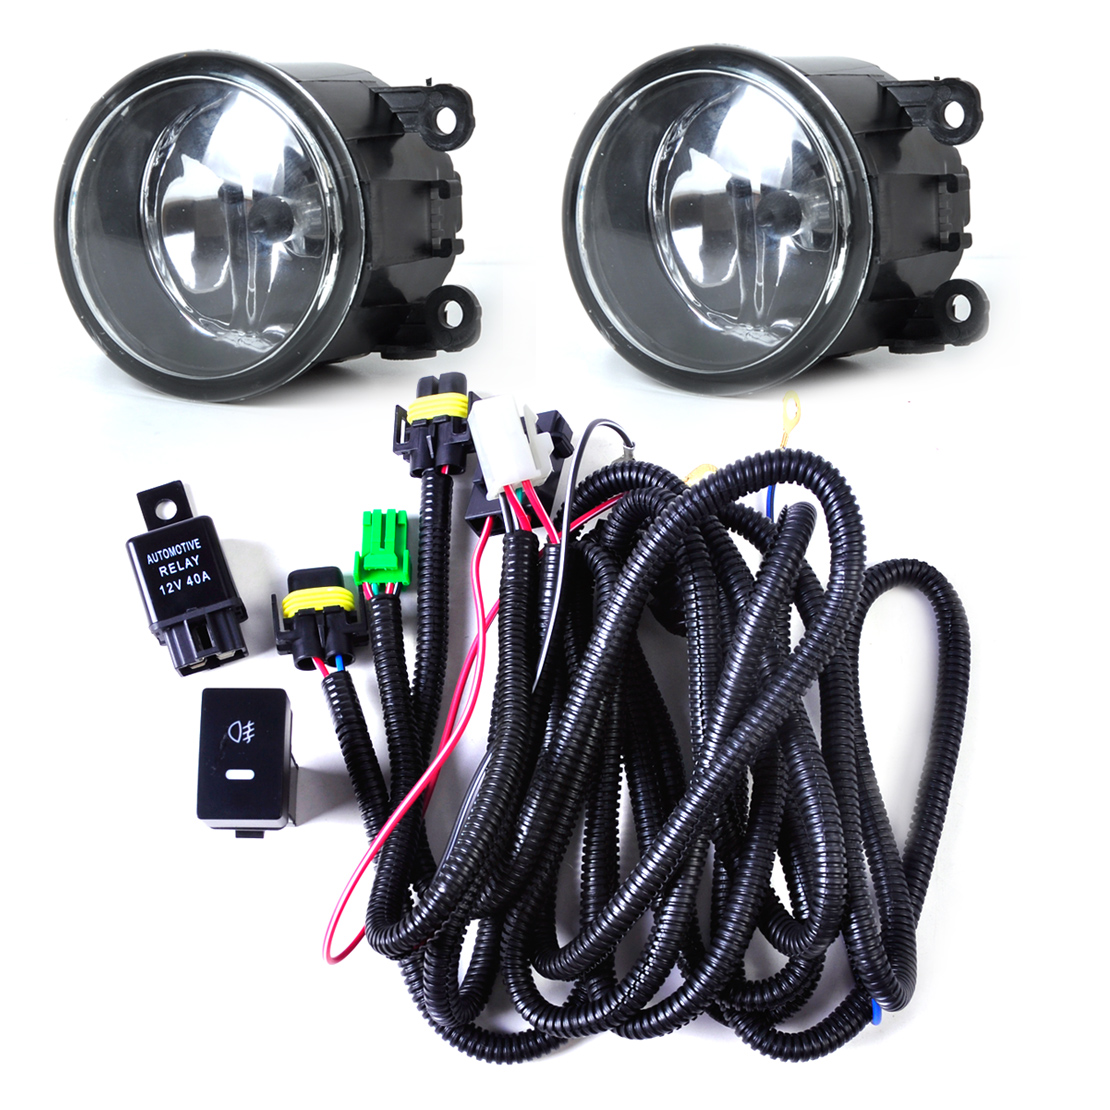 beler Wiring Harness Sockets Switch + 2x H11 Fog Lights Lamp 4F9Z-15200-AA Kit for Ford Focus Mustang Honda CR-V Nissan Sentra<br>